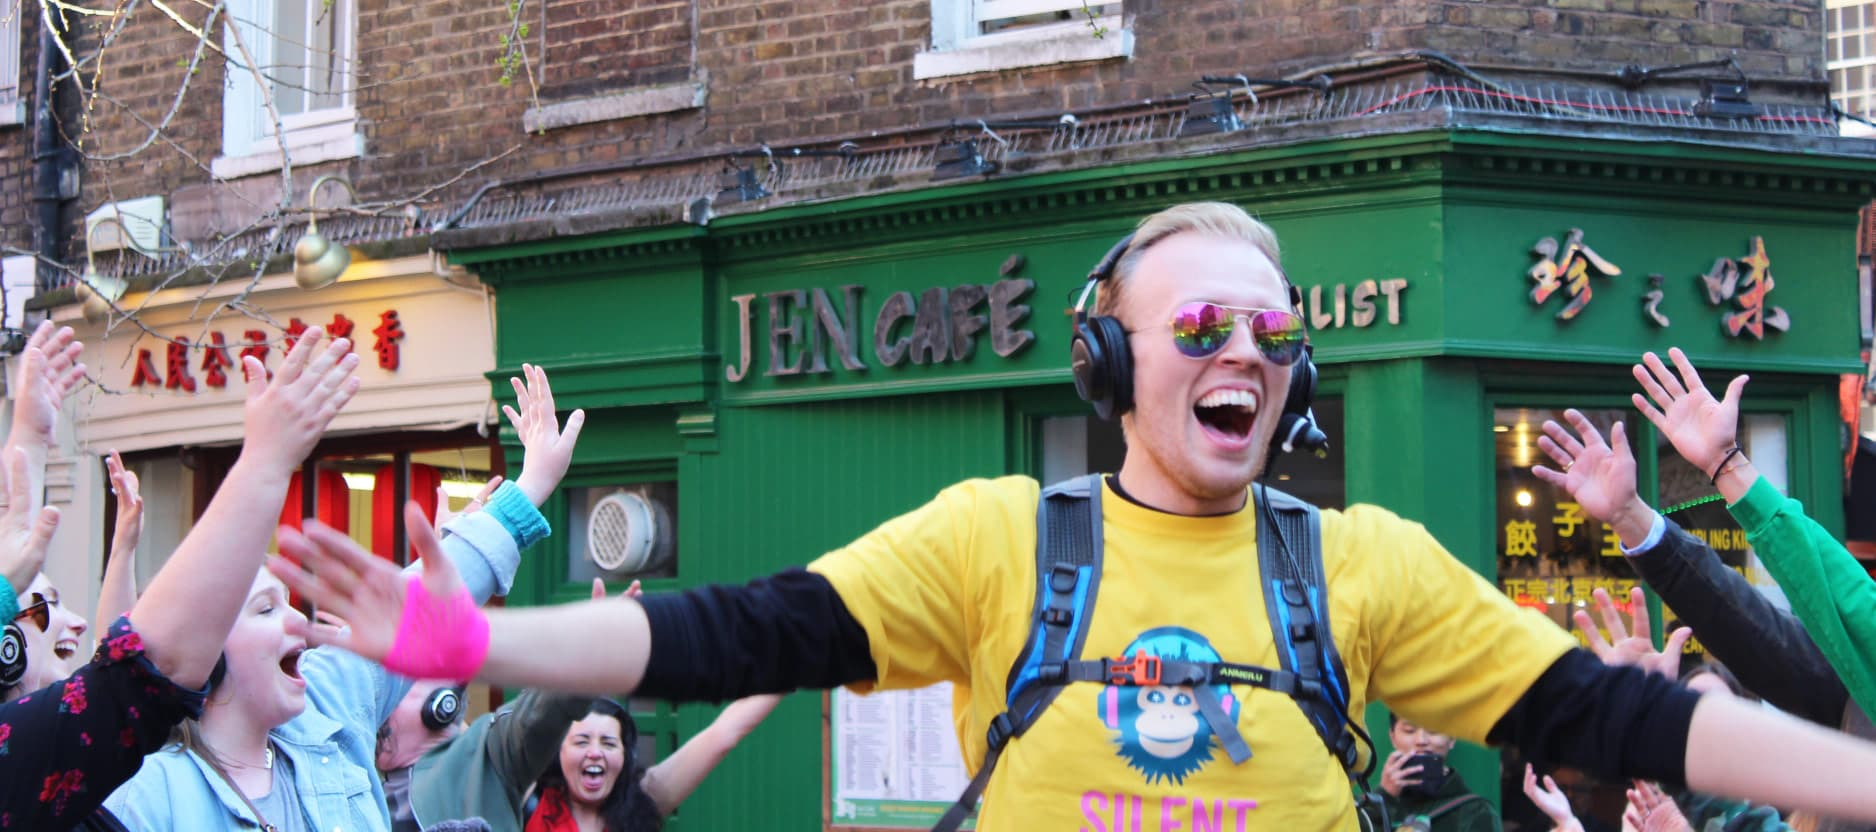 London Silent Disco Tour Host